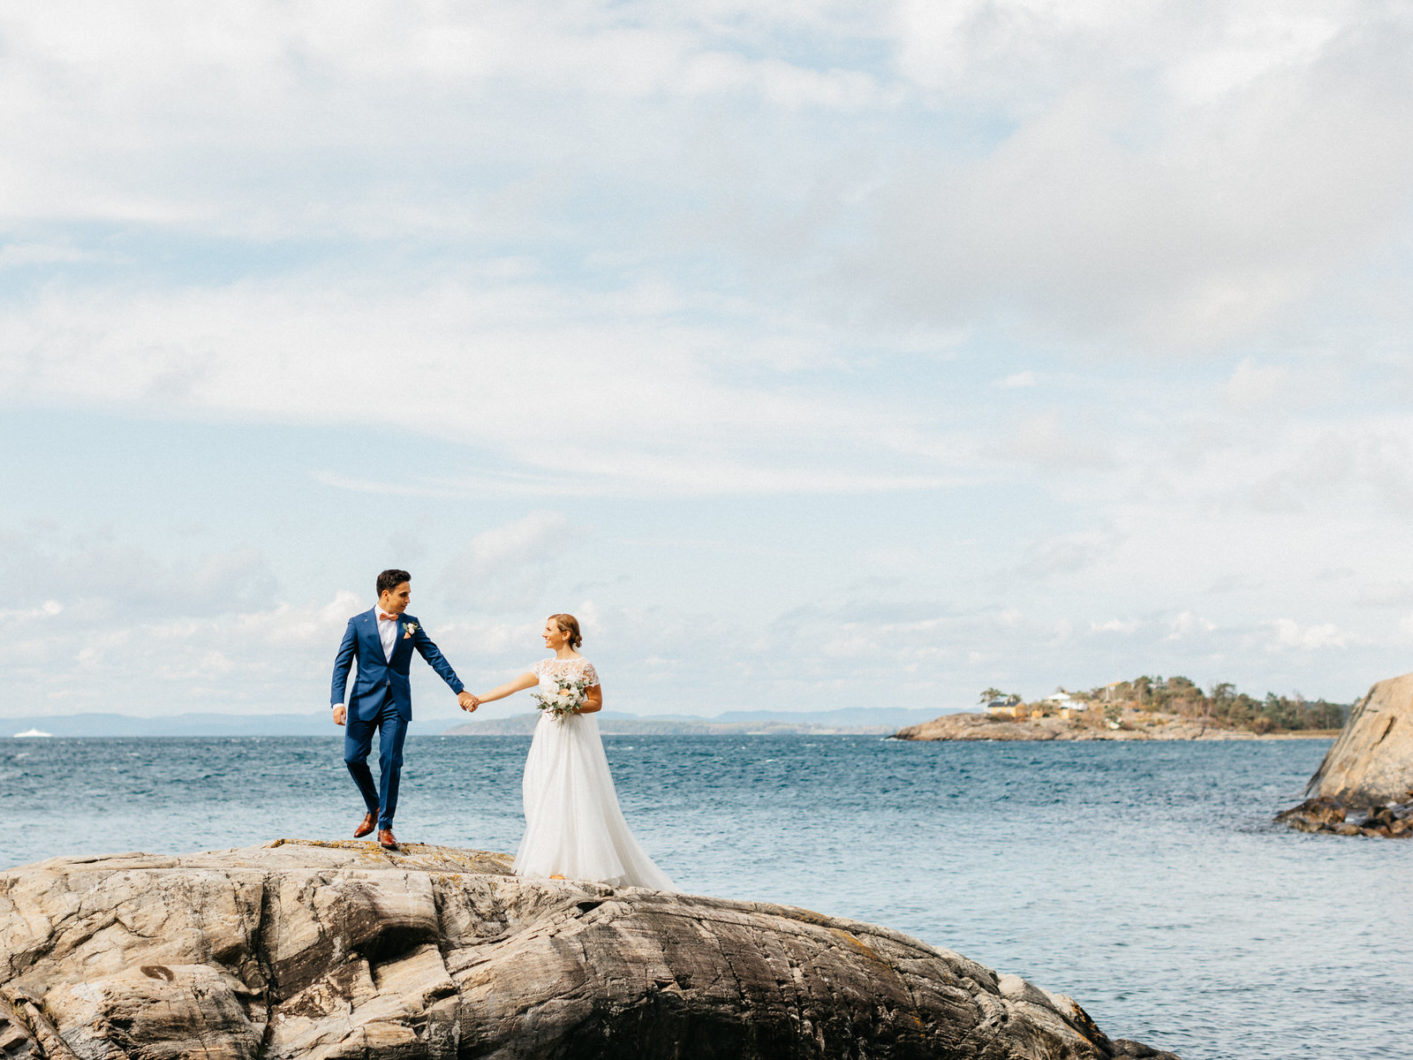 Fotograf-Eline-Jacobine-Bryllup-Støtvig-hotell-Larkollen-Rygge-Wedding-Norway-Eucalyptus-blomster-first-look-beach-wedding-36